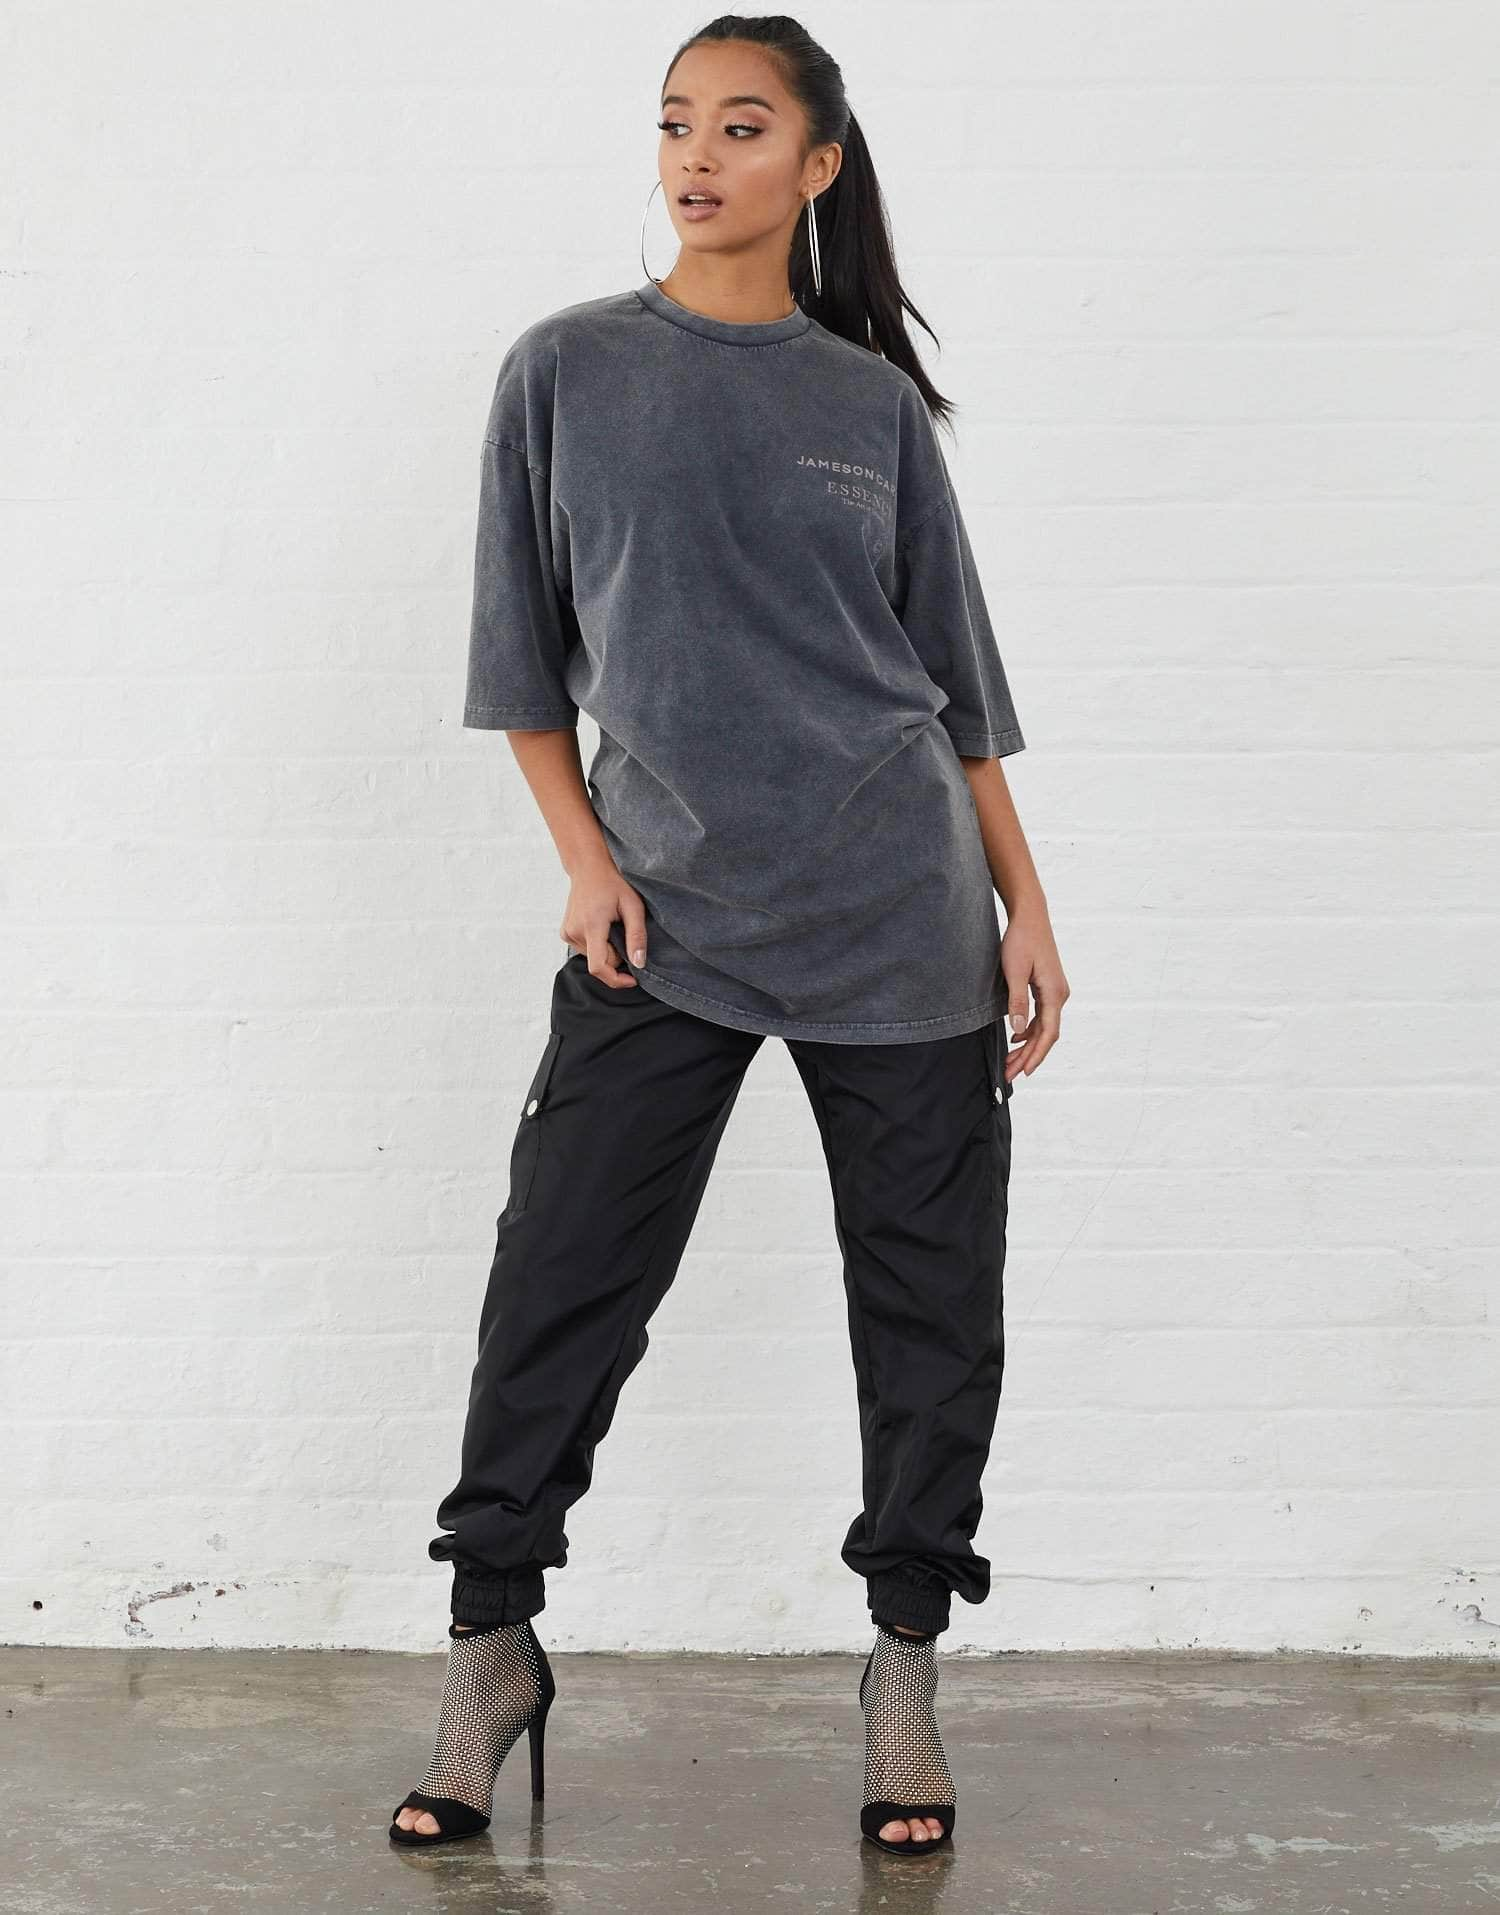 Jameson Carter T-Shirts, not-sale Workshop Oversized T-Shirt - Acid Wash